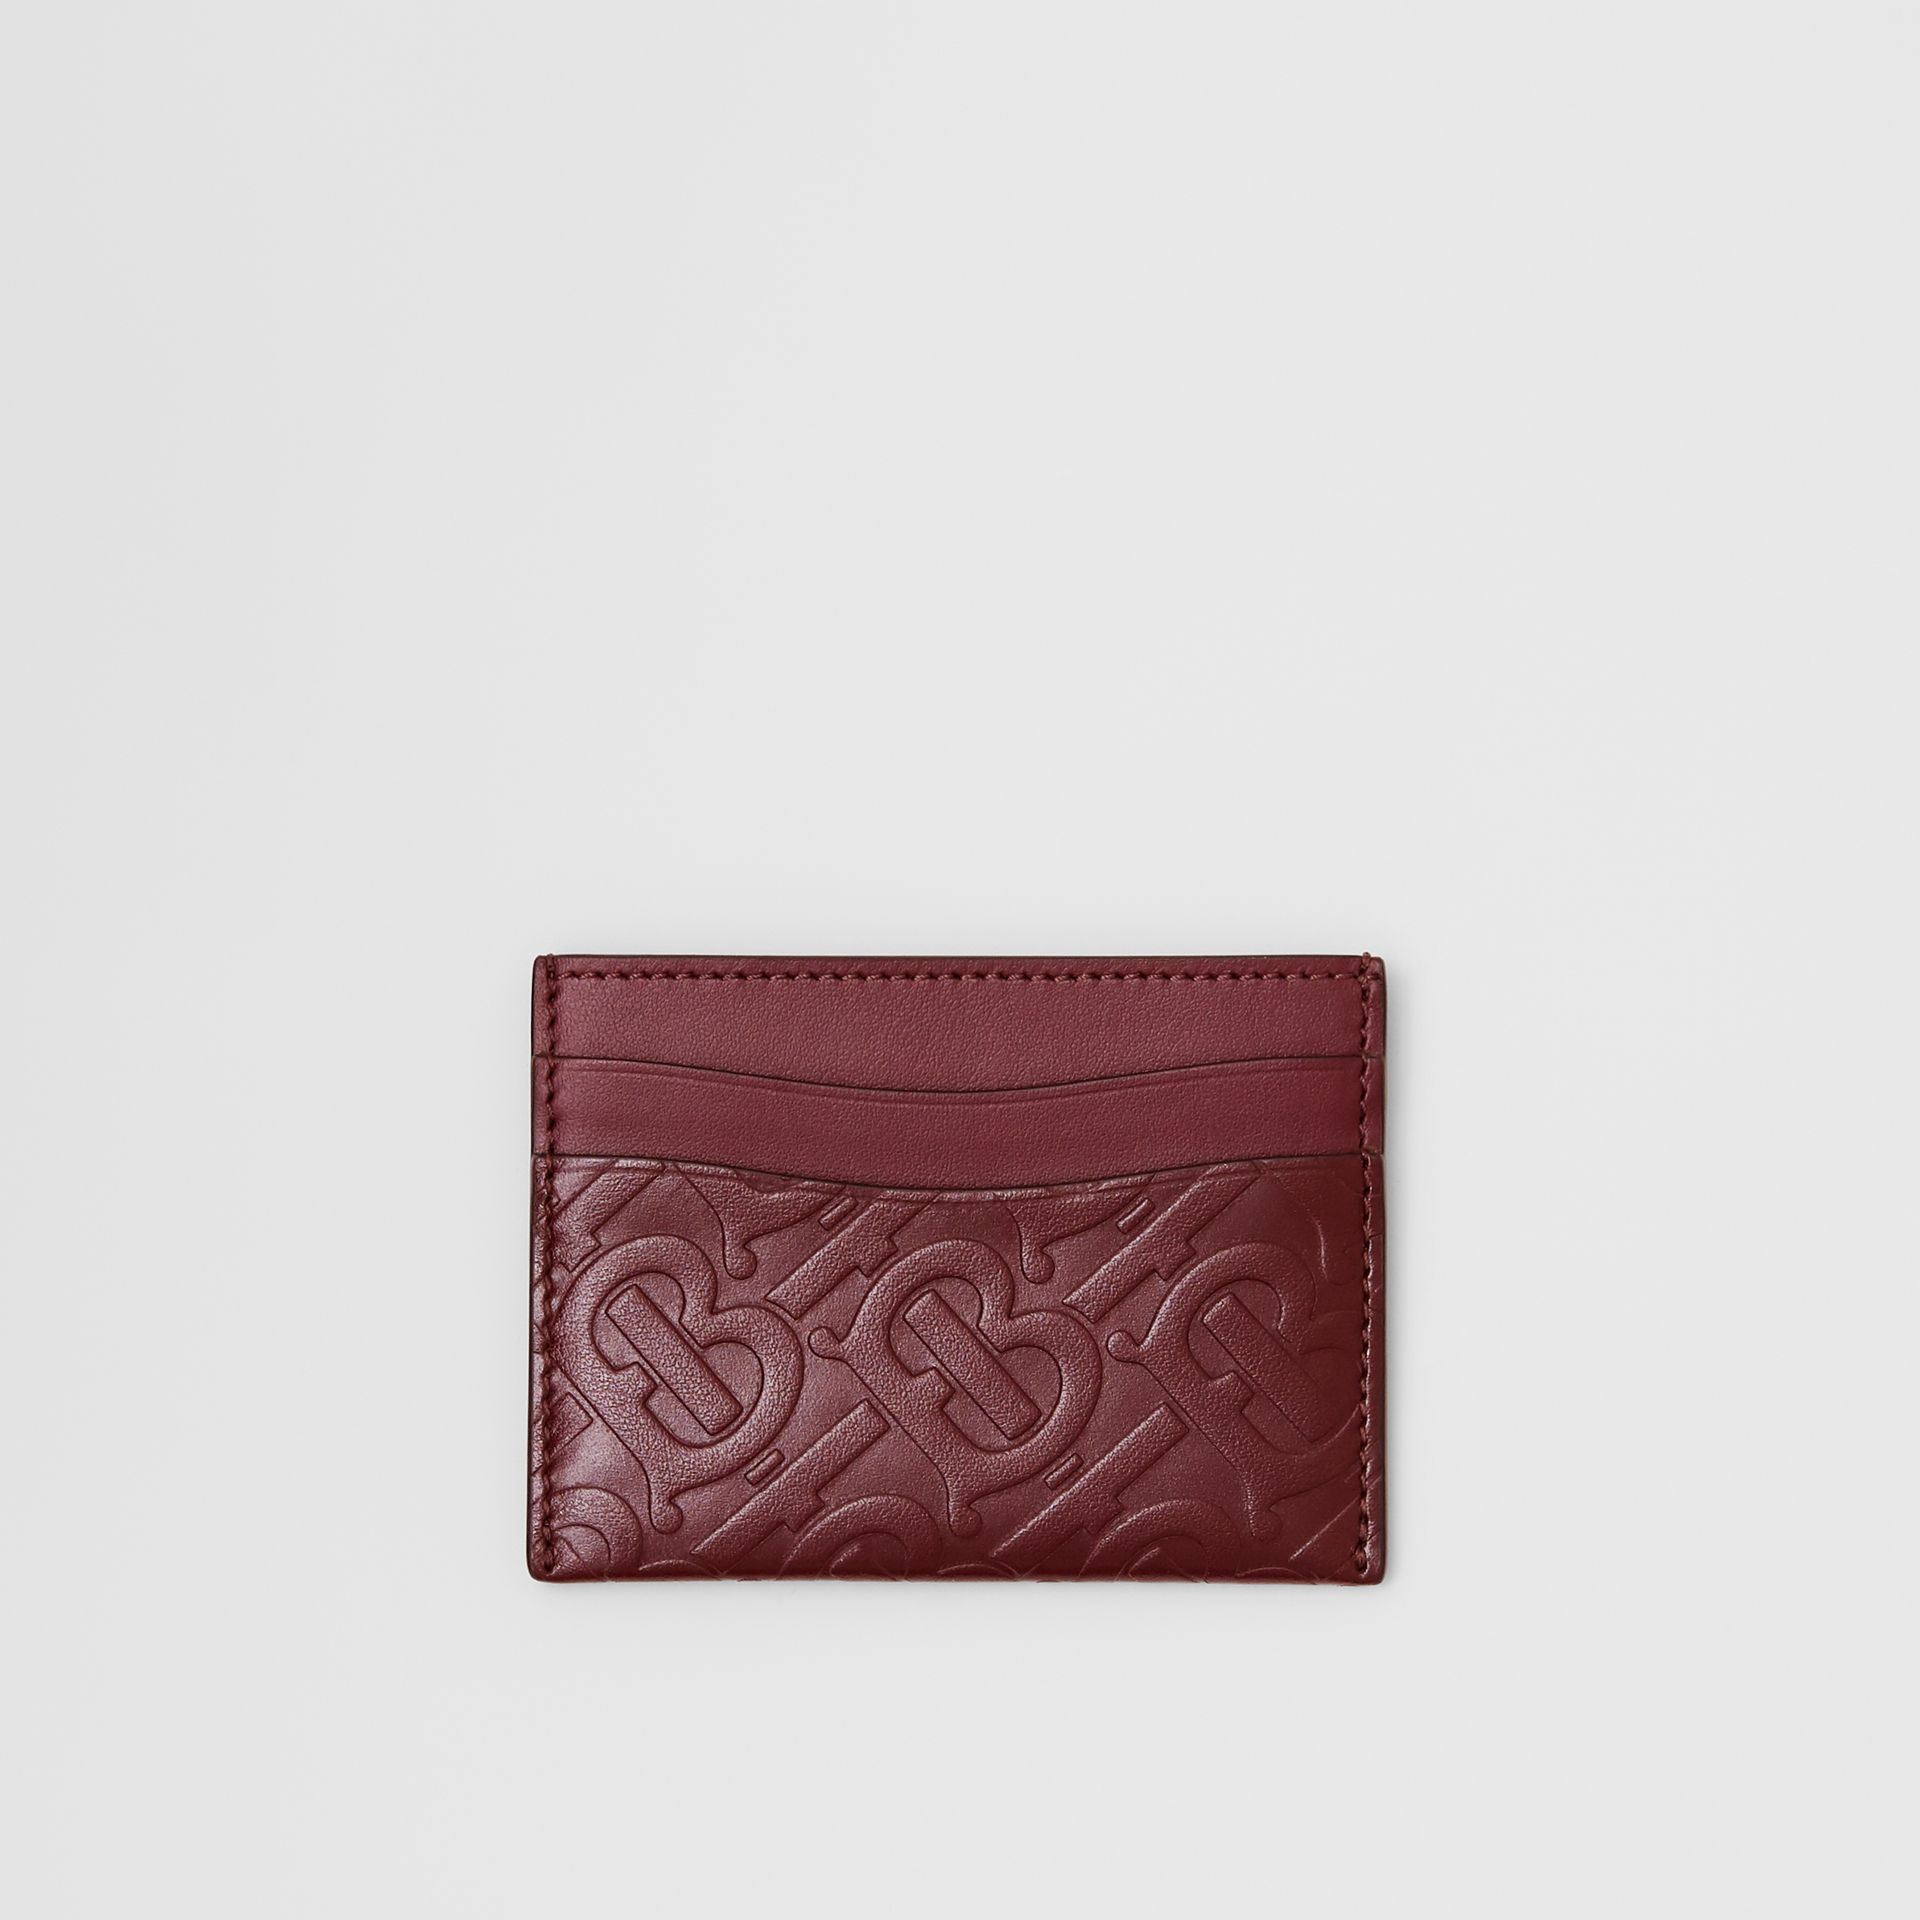 Porte-cartes en cuir Monogram (Oxblood) - Femme | Burberry - photo de la galerie 0